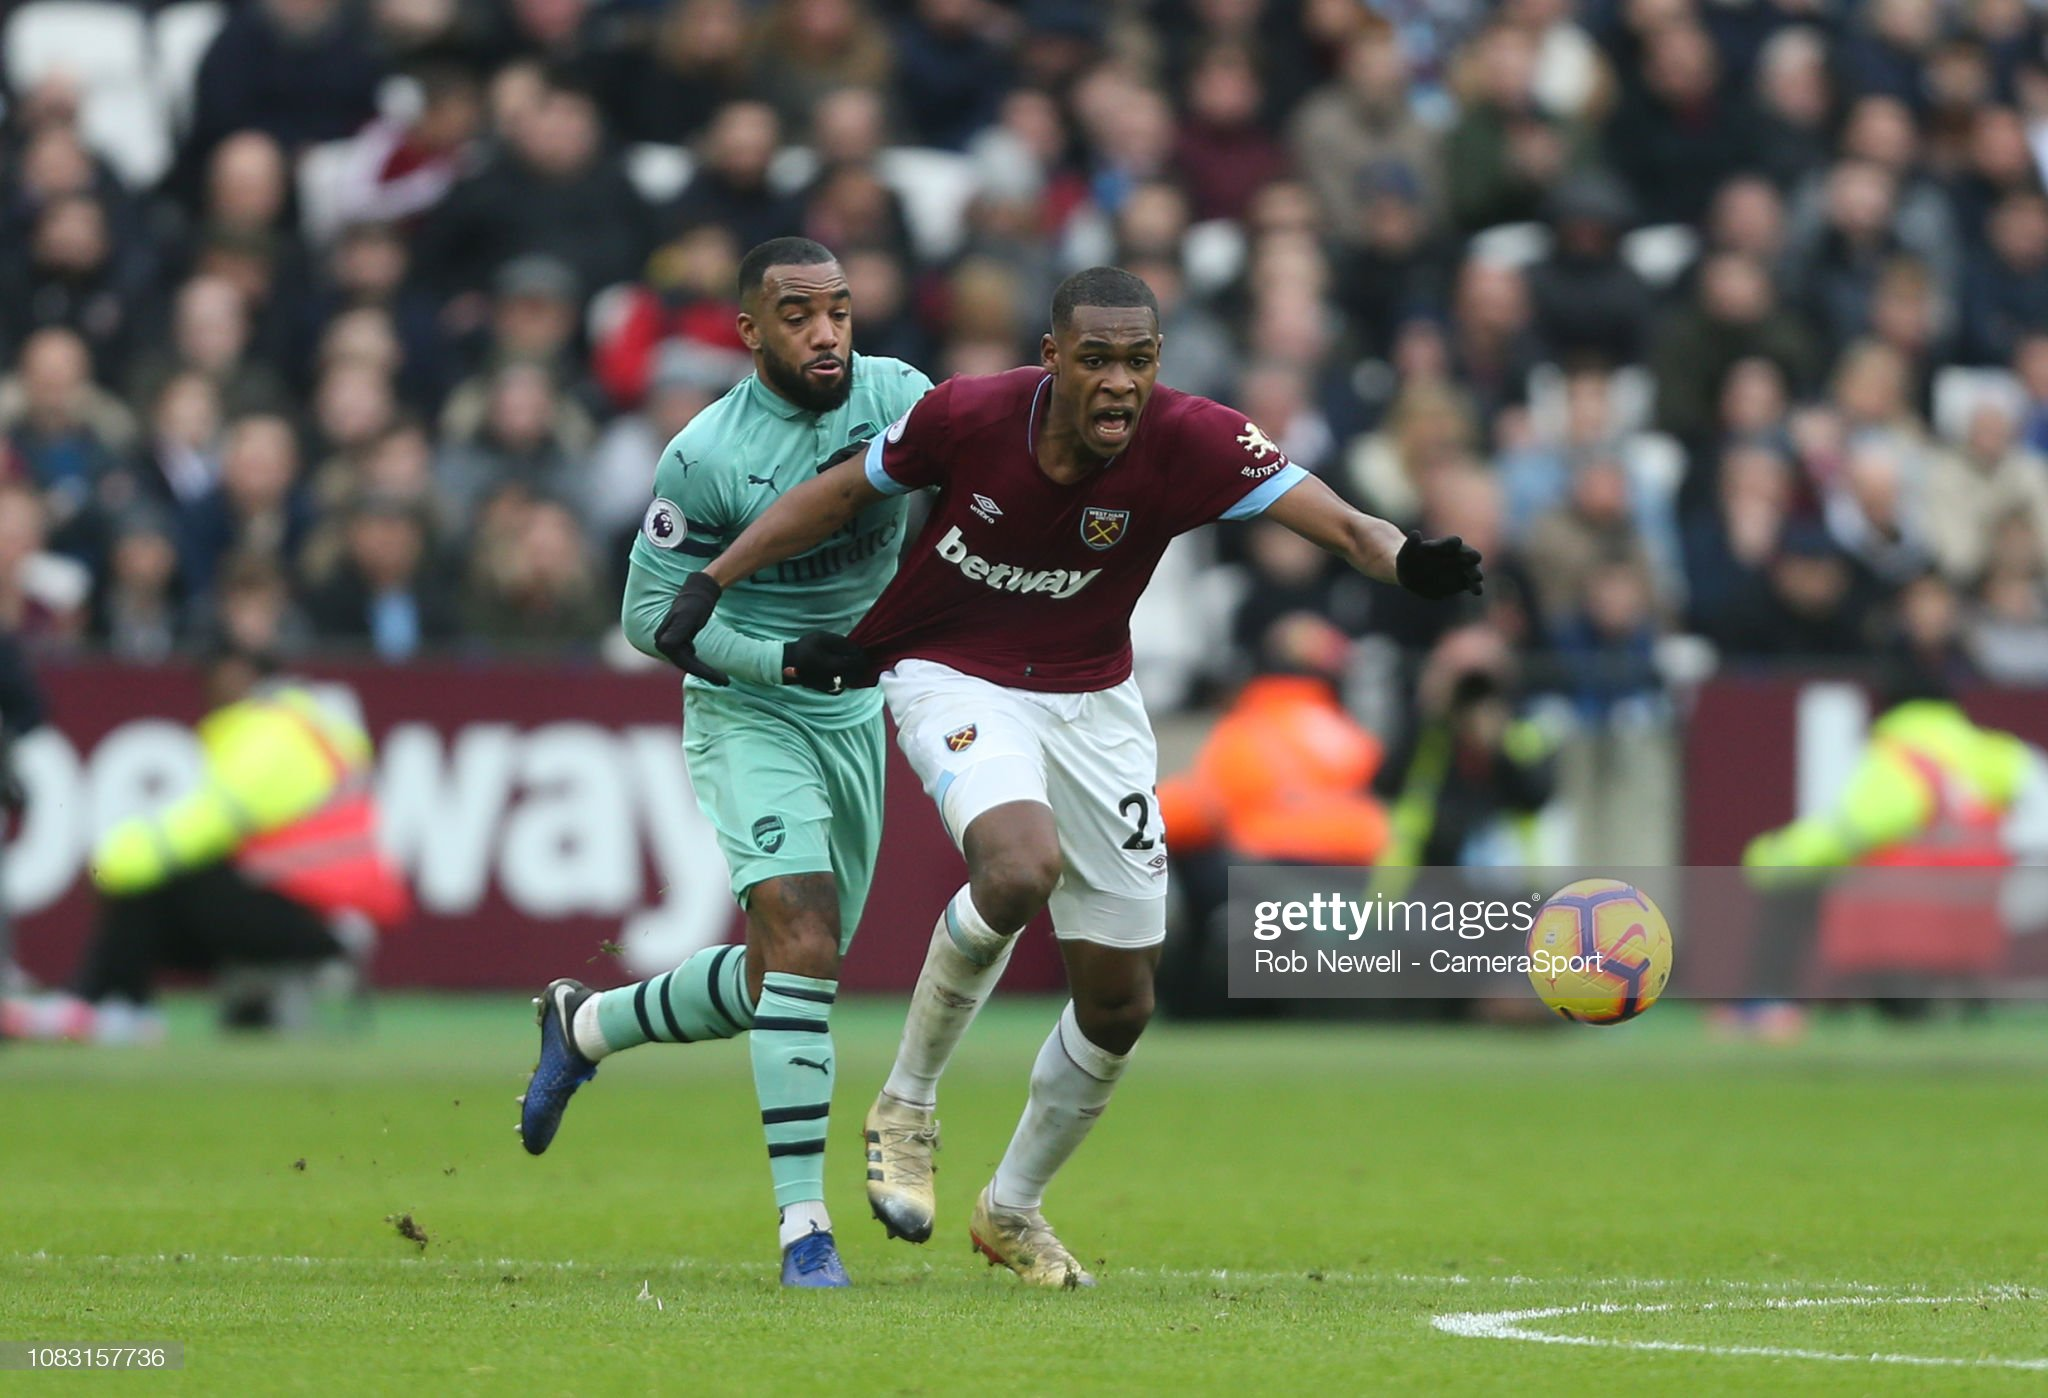 West Ham v Arsenal preview, prediction and odds